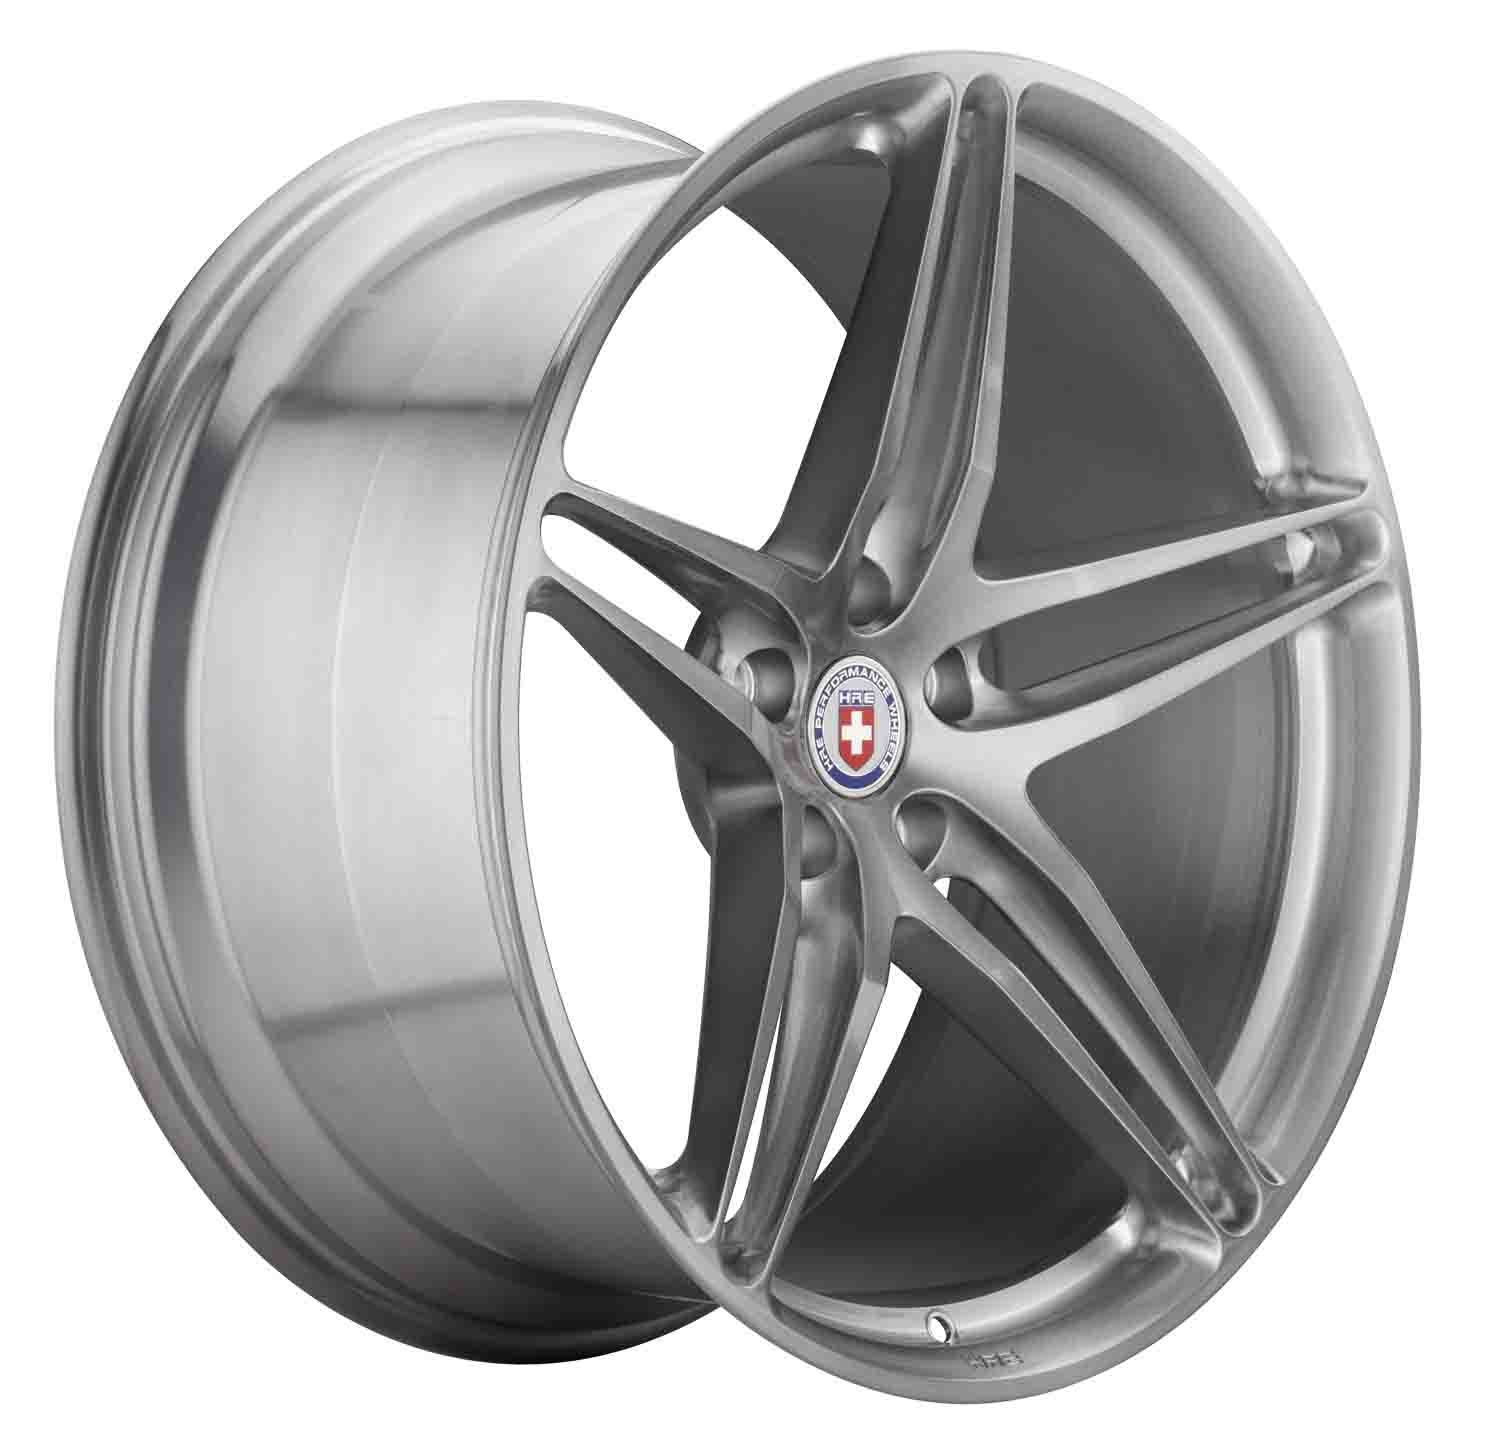 HRE P107 (P1 Series) forged wheels